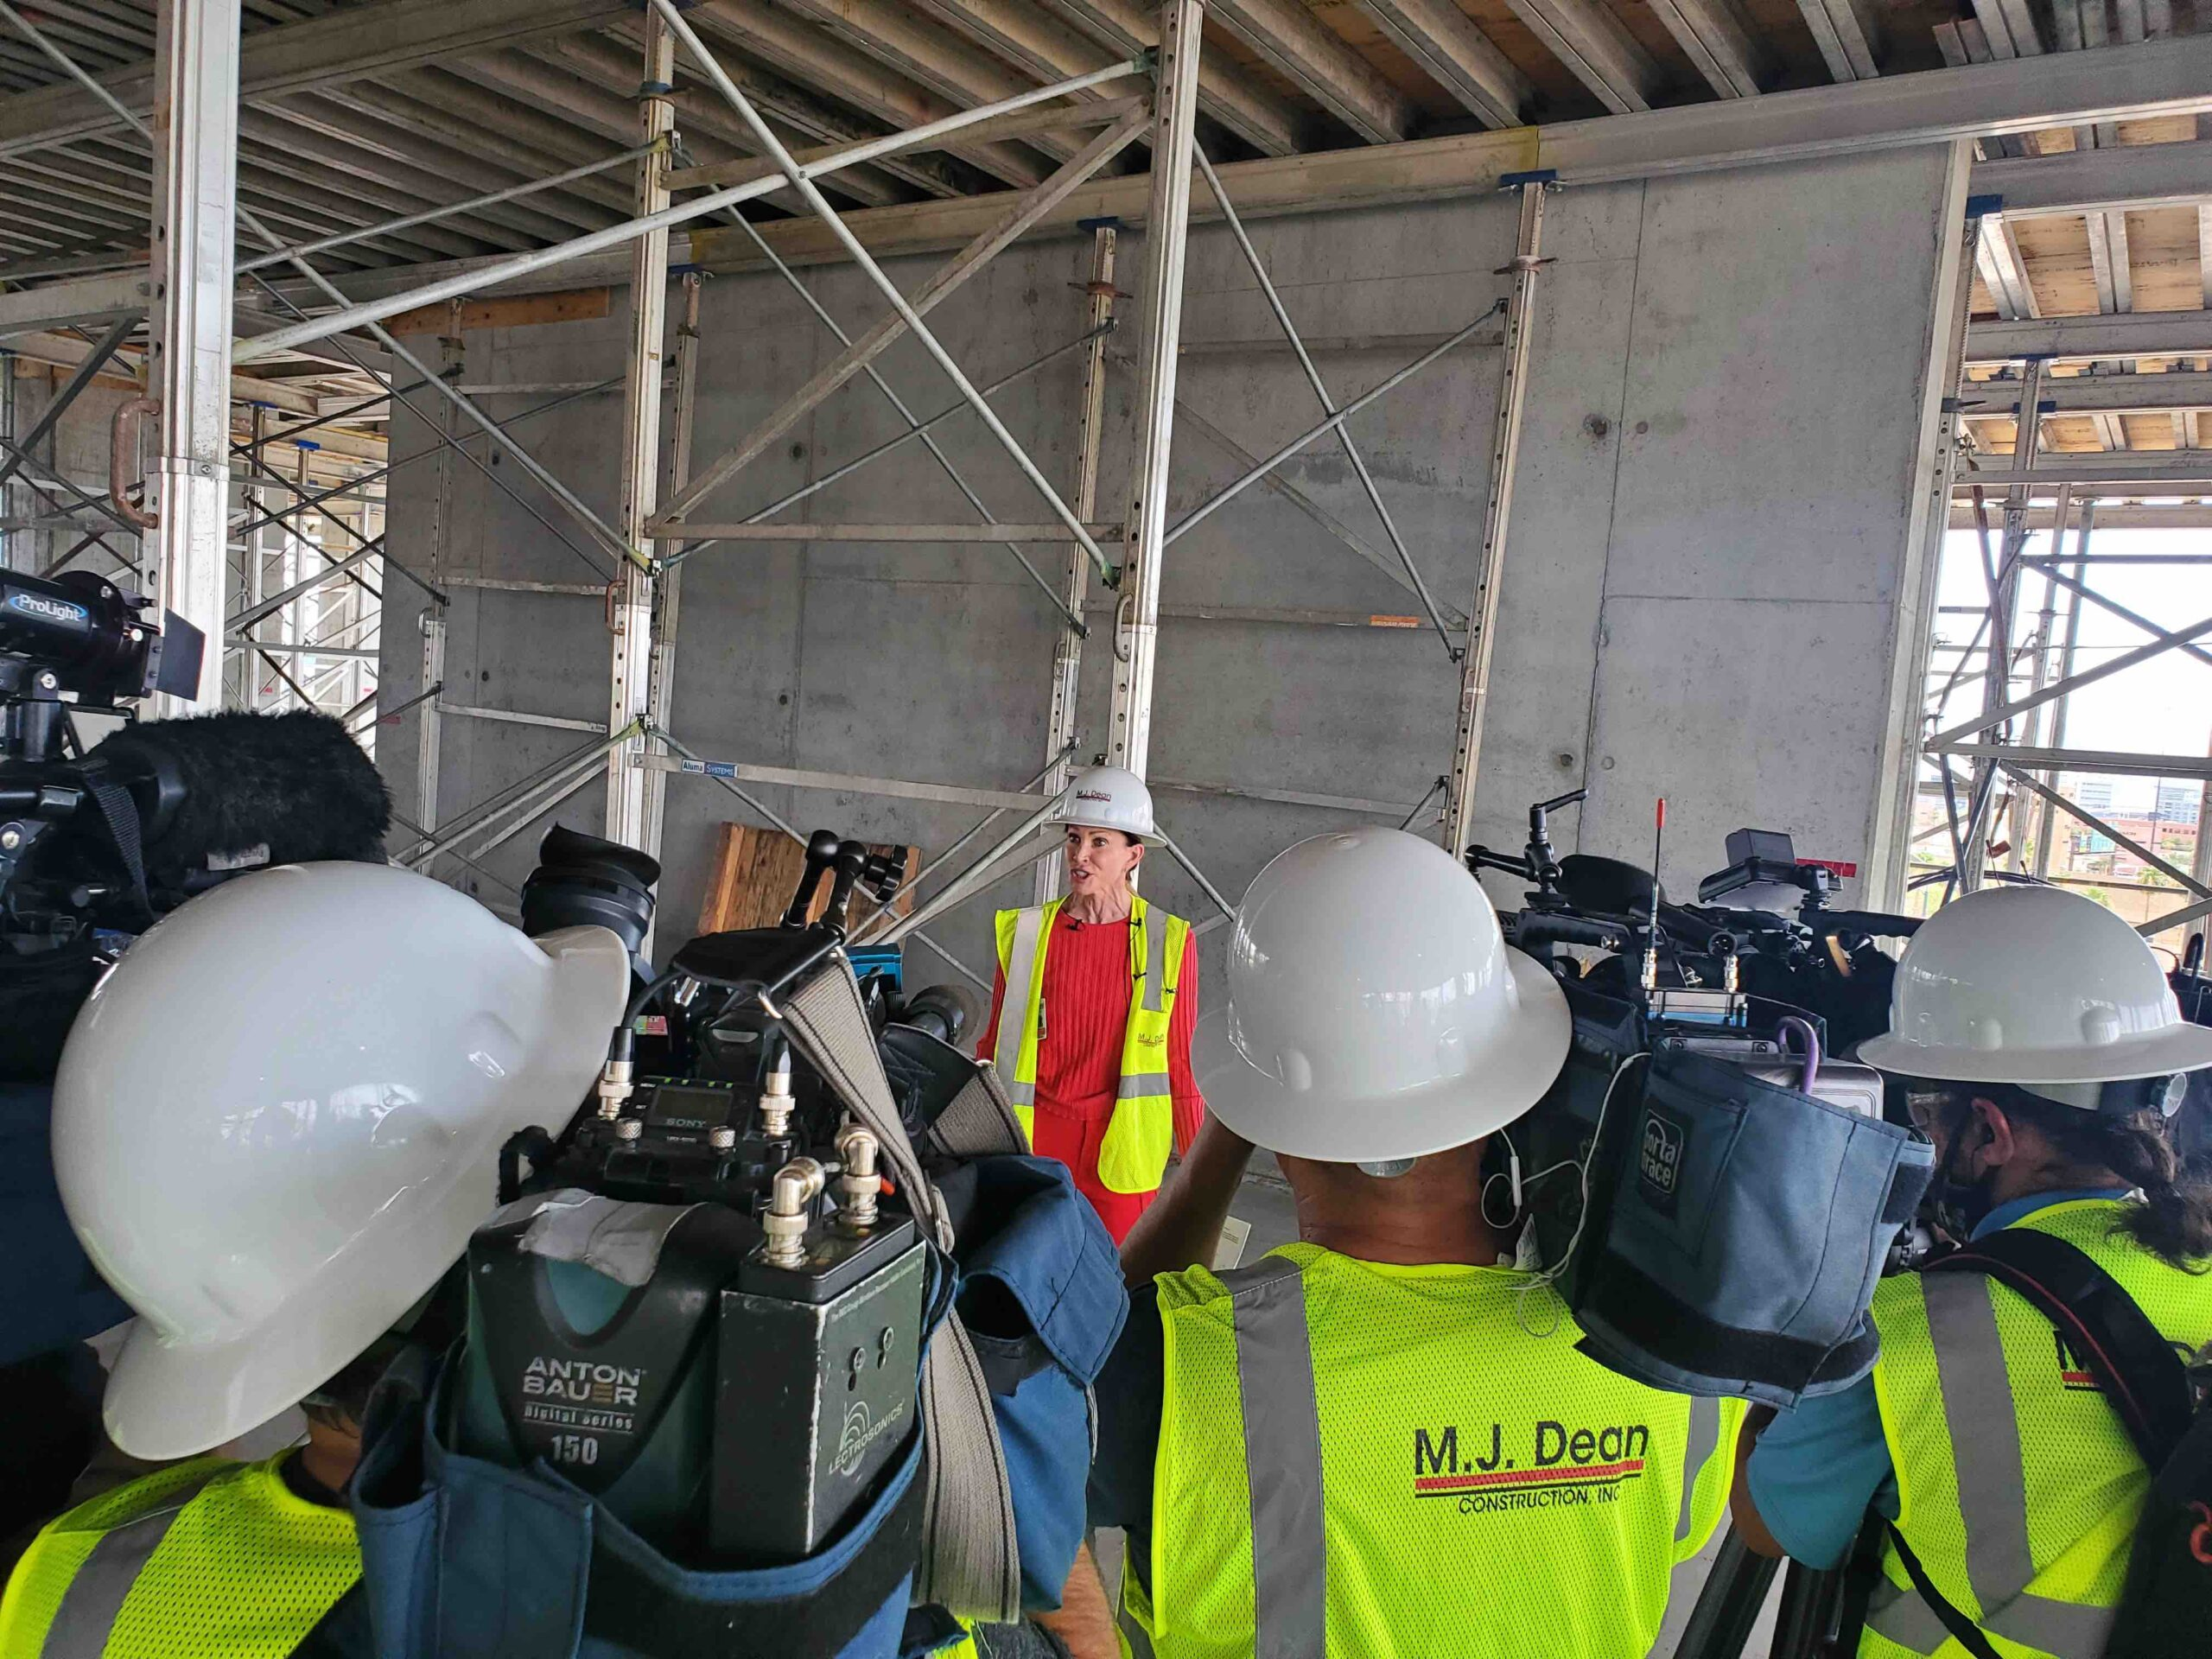 UNLV's new medical education building hits halfway point — Las Vegas Review-Journal